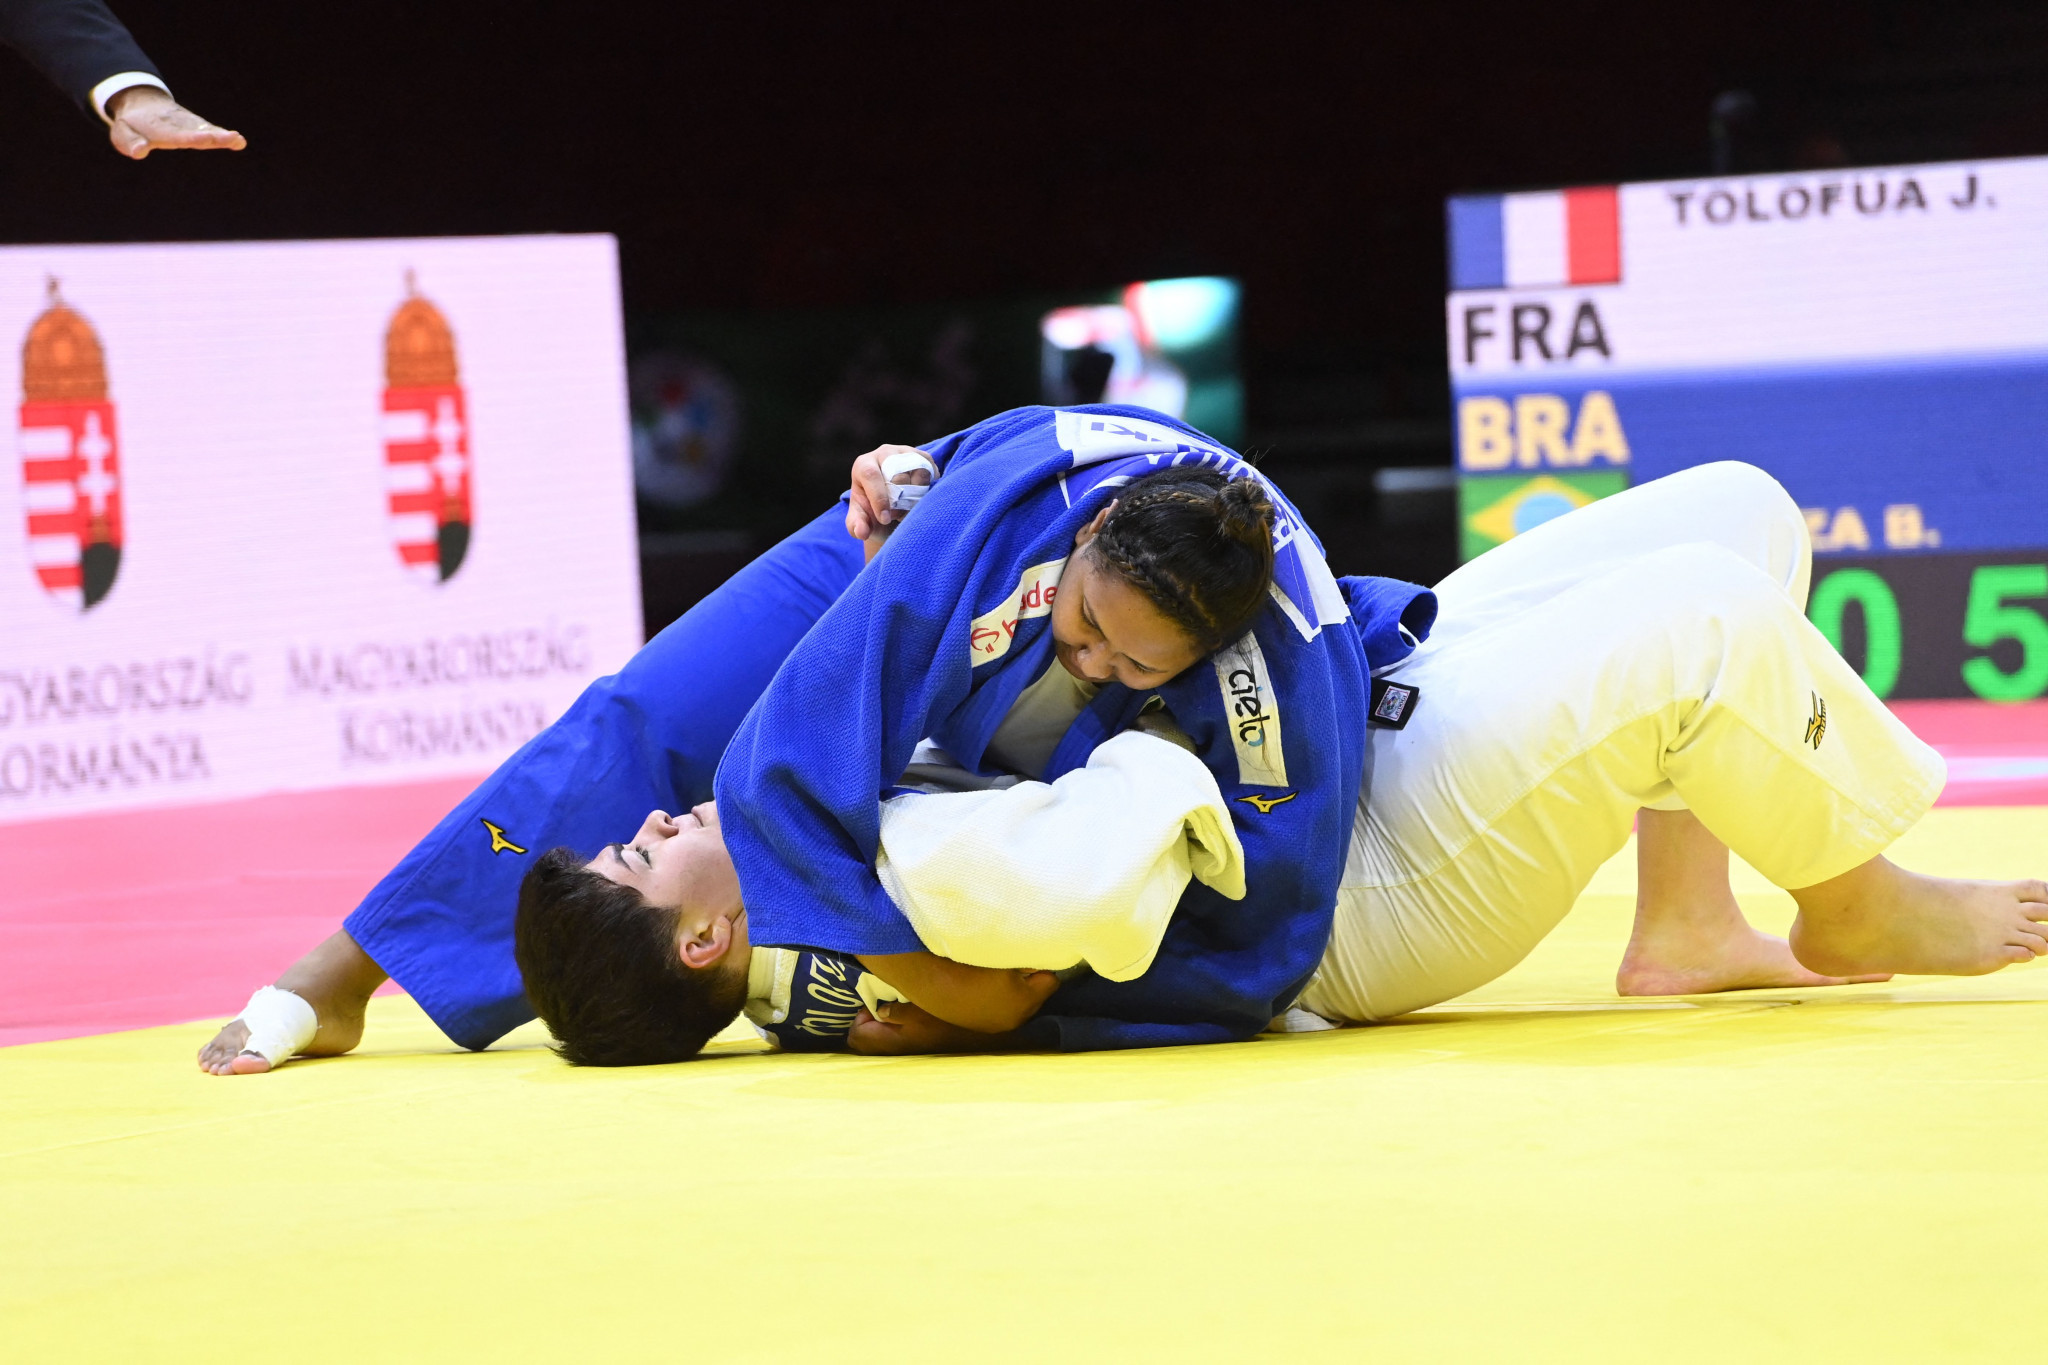 Beatriz Souza made it two Brazilians on the podium with a win over Julia Tolofua of France ©Getty Images